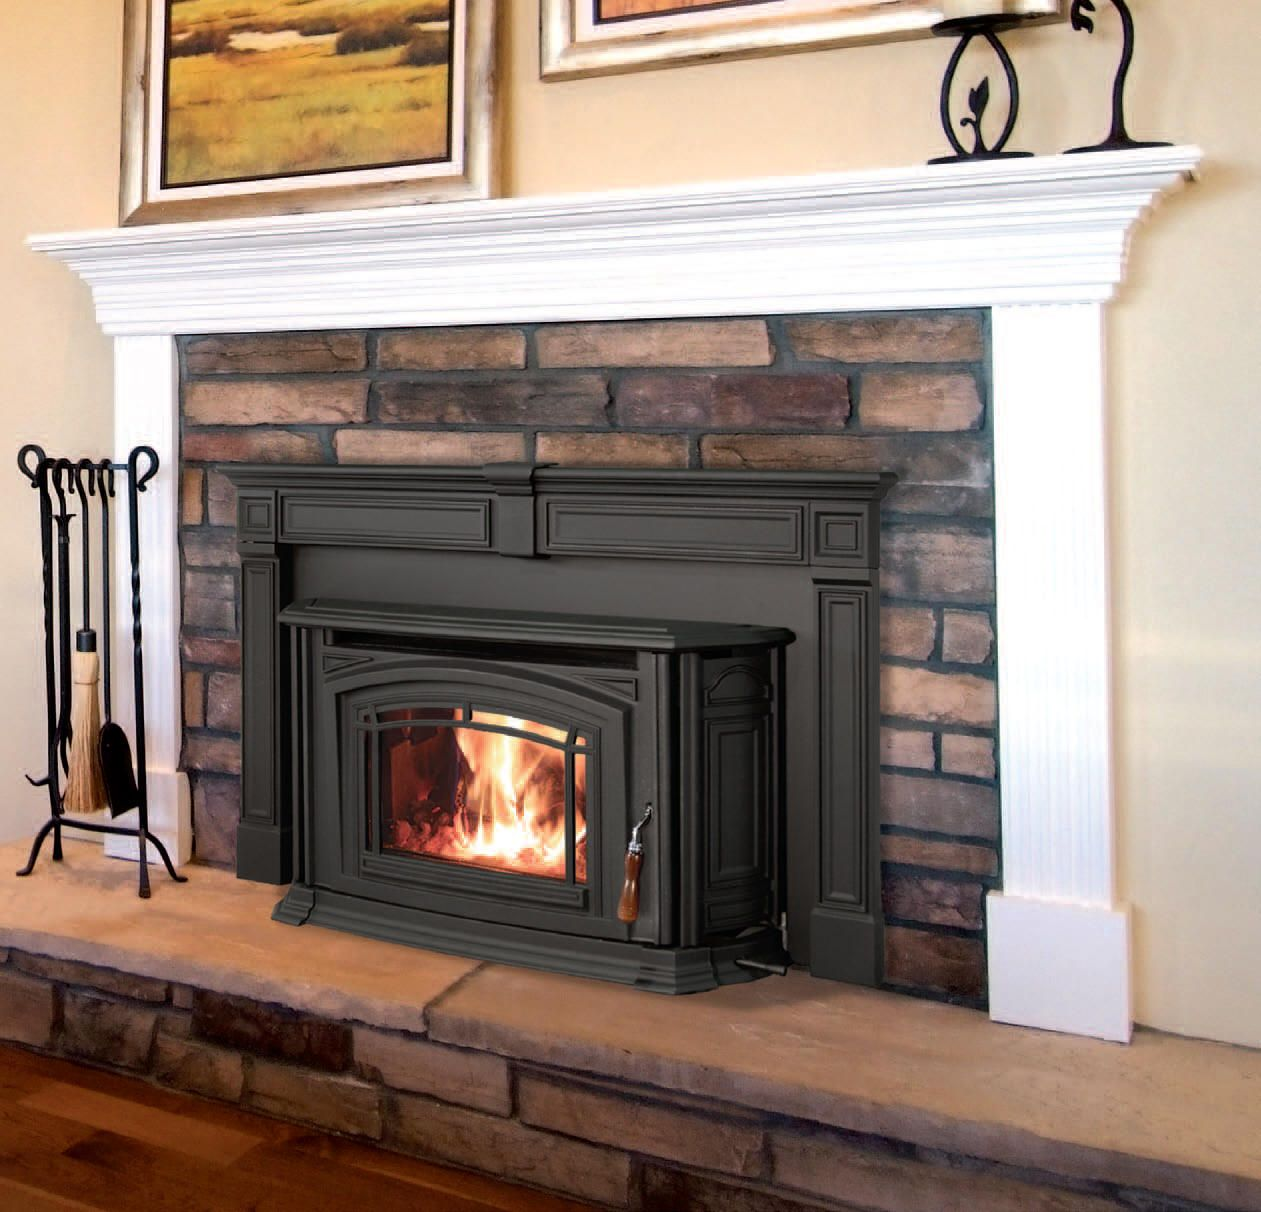 I Like This Pellet Stove With A Mantel Home Decor Updates Pinterest Pellet Stove Stove